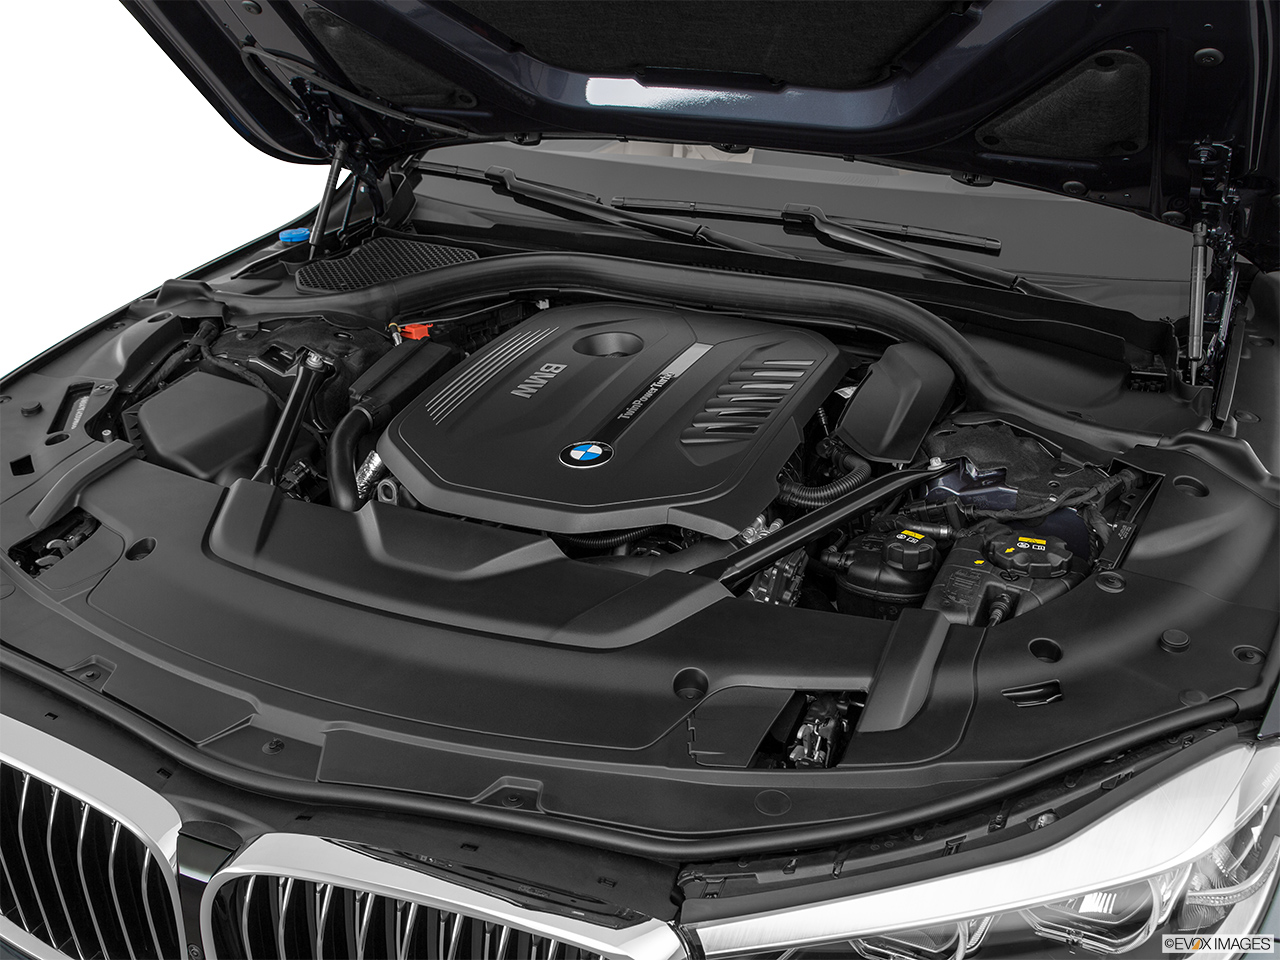 BMW 7 Series 2017 760Li Bahrain Engine